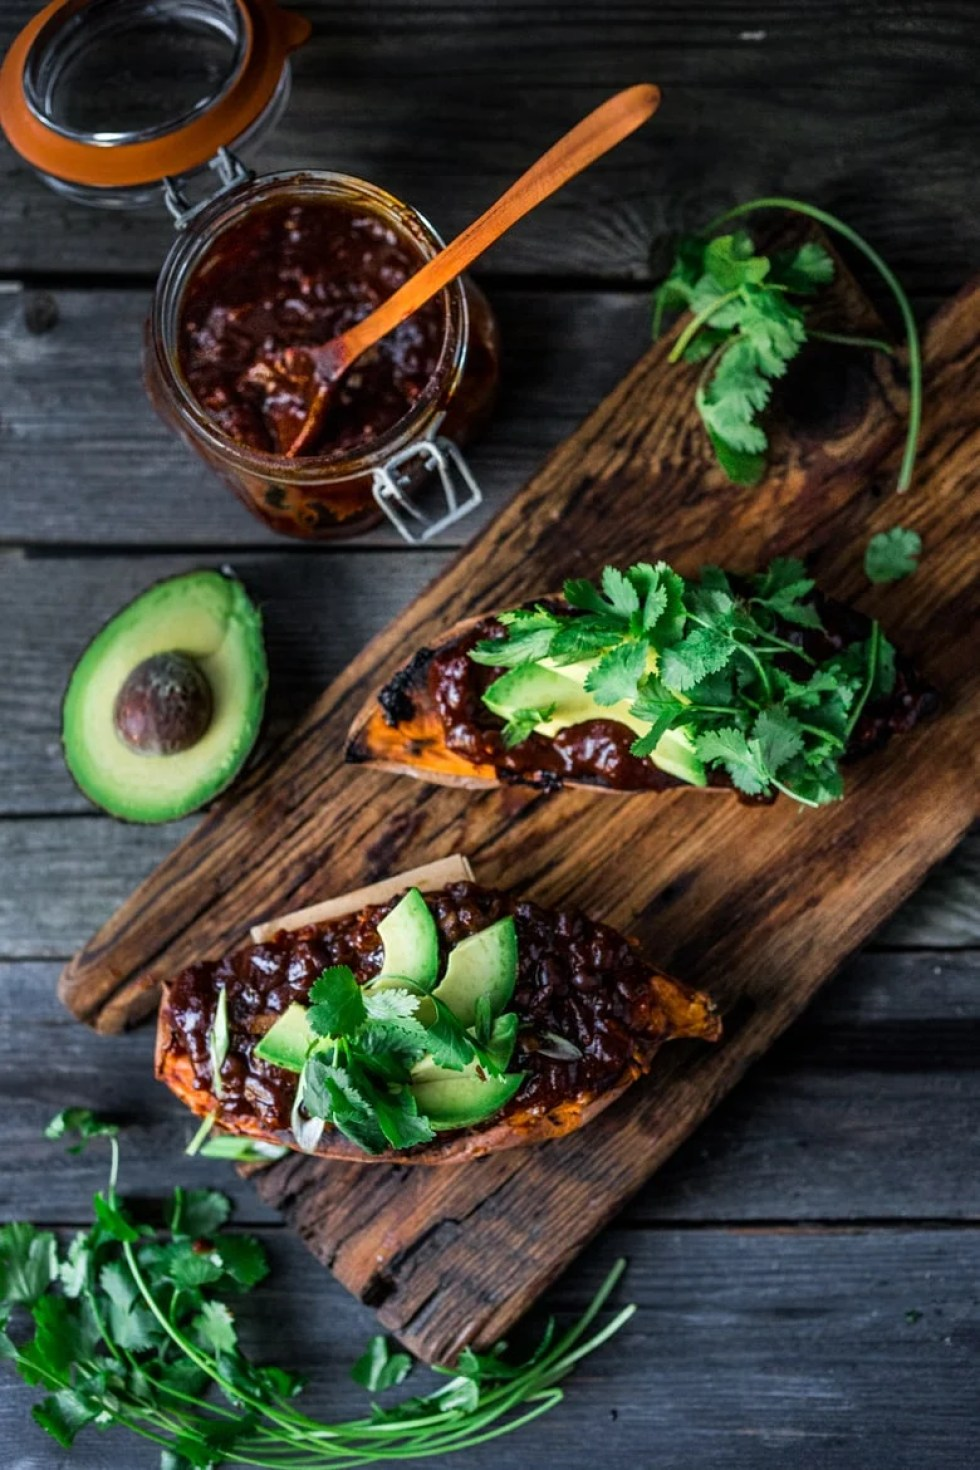 BBQ Chicken (or Black Bean ) Stuffed Sweet Potato- keep with vegan with black beans and avocado, or add chicken and melty cheese, and top with cilantro. Either way a win!! #glutenfree #vegan | www.feastingathome.com